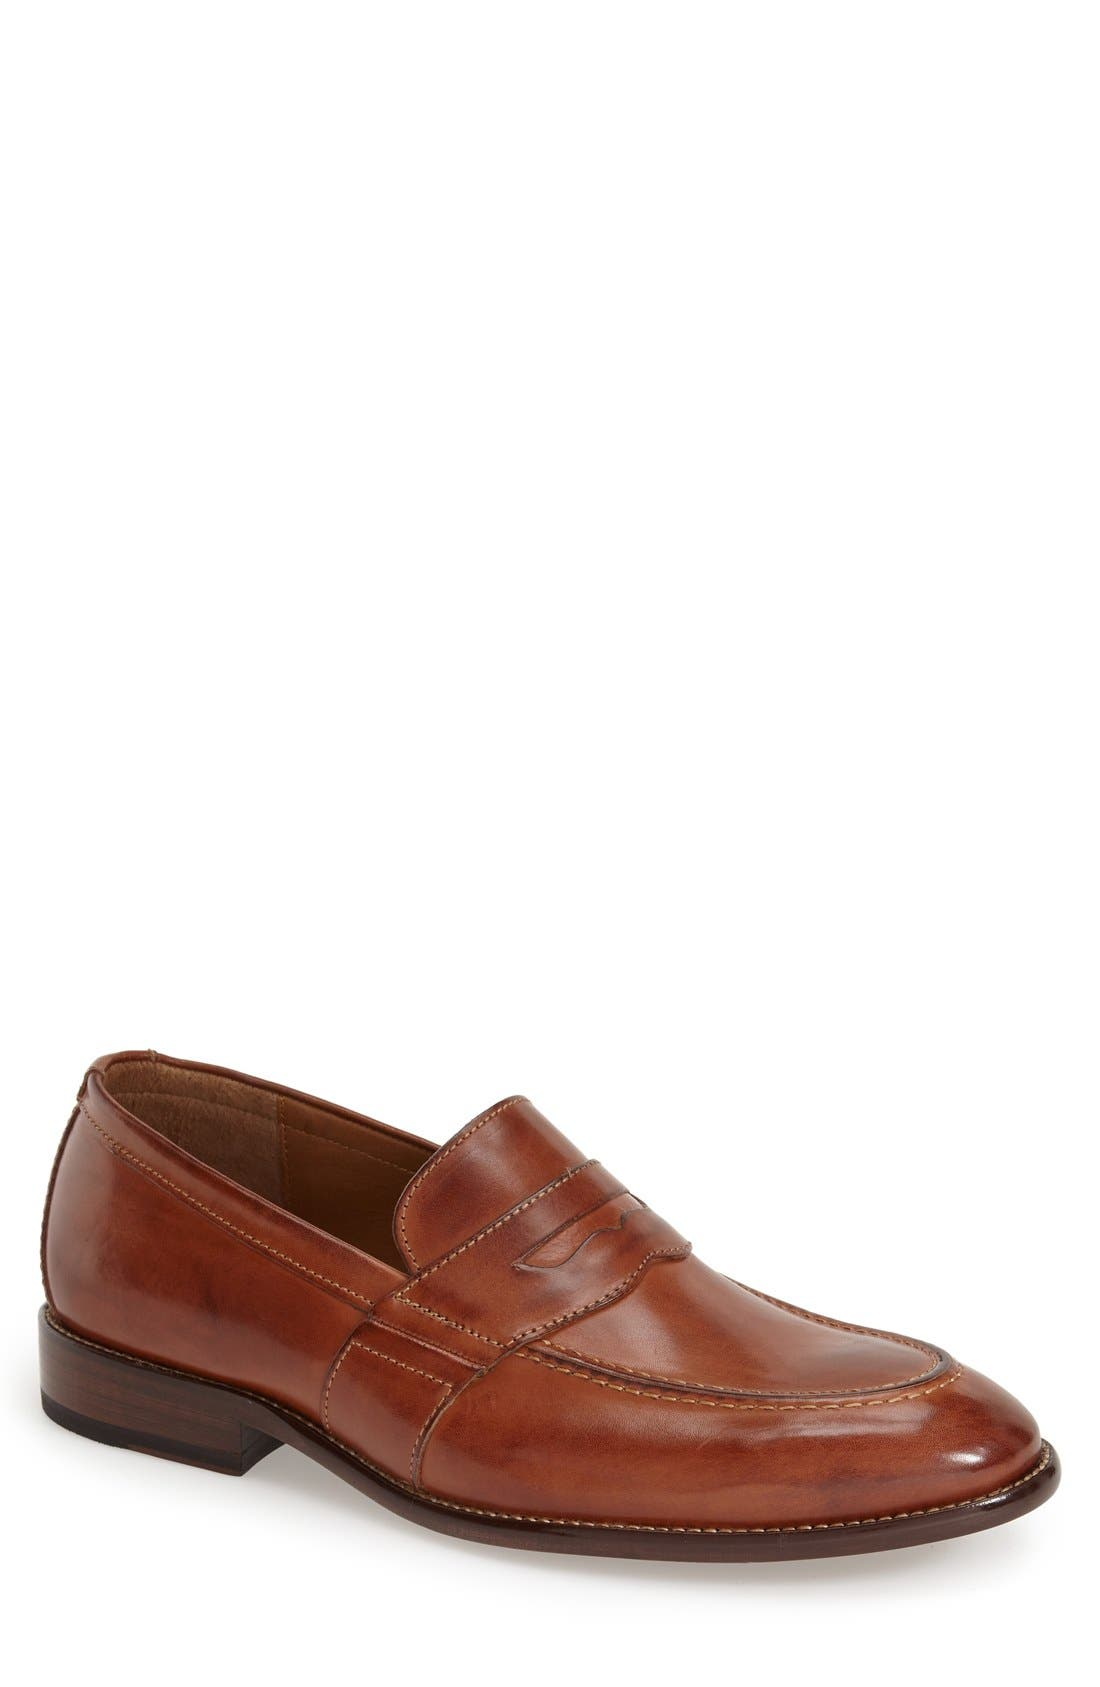 J & M 1850 'Allred' Penny Loafer,                             Main thumbnail 1, color,                             240